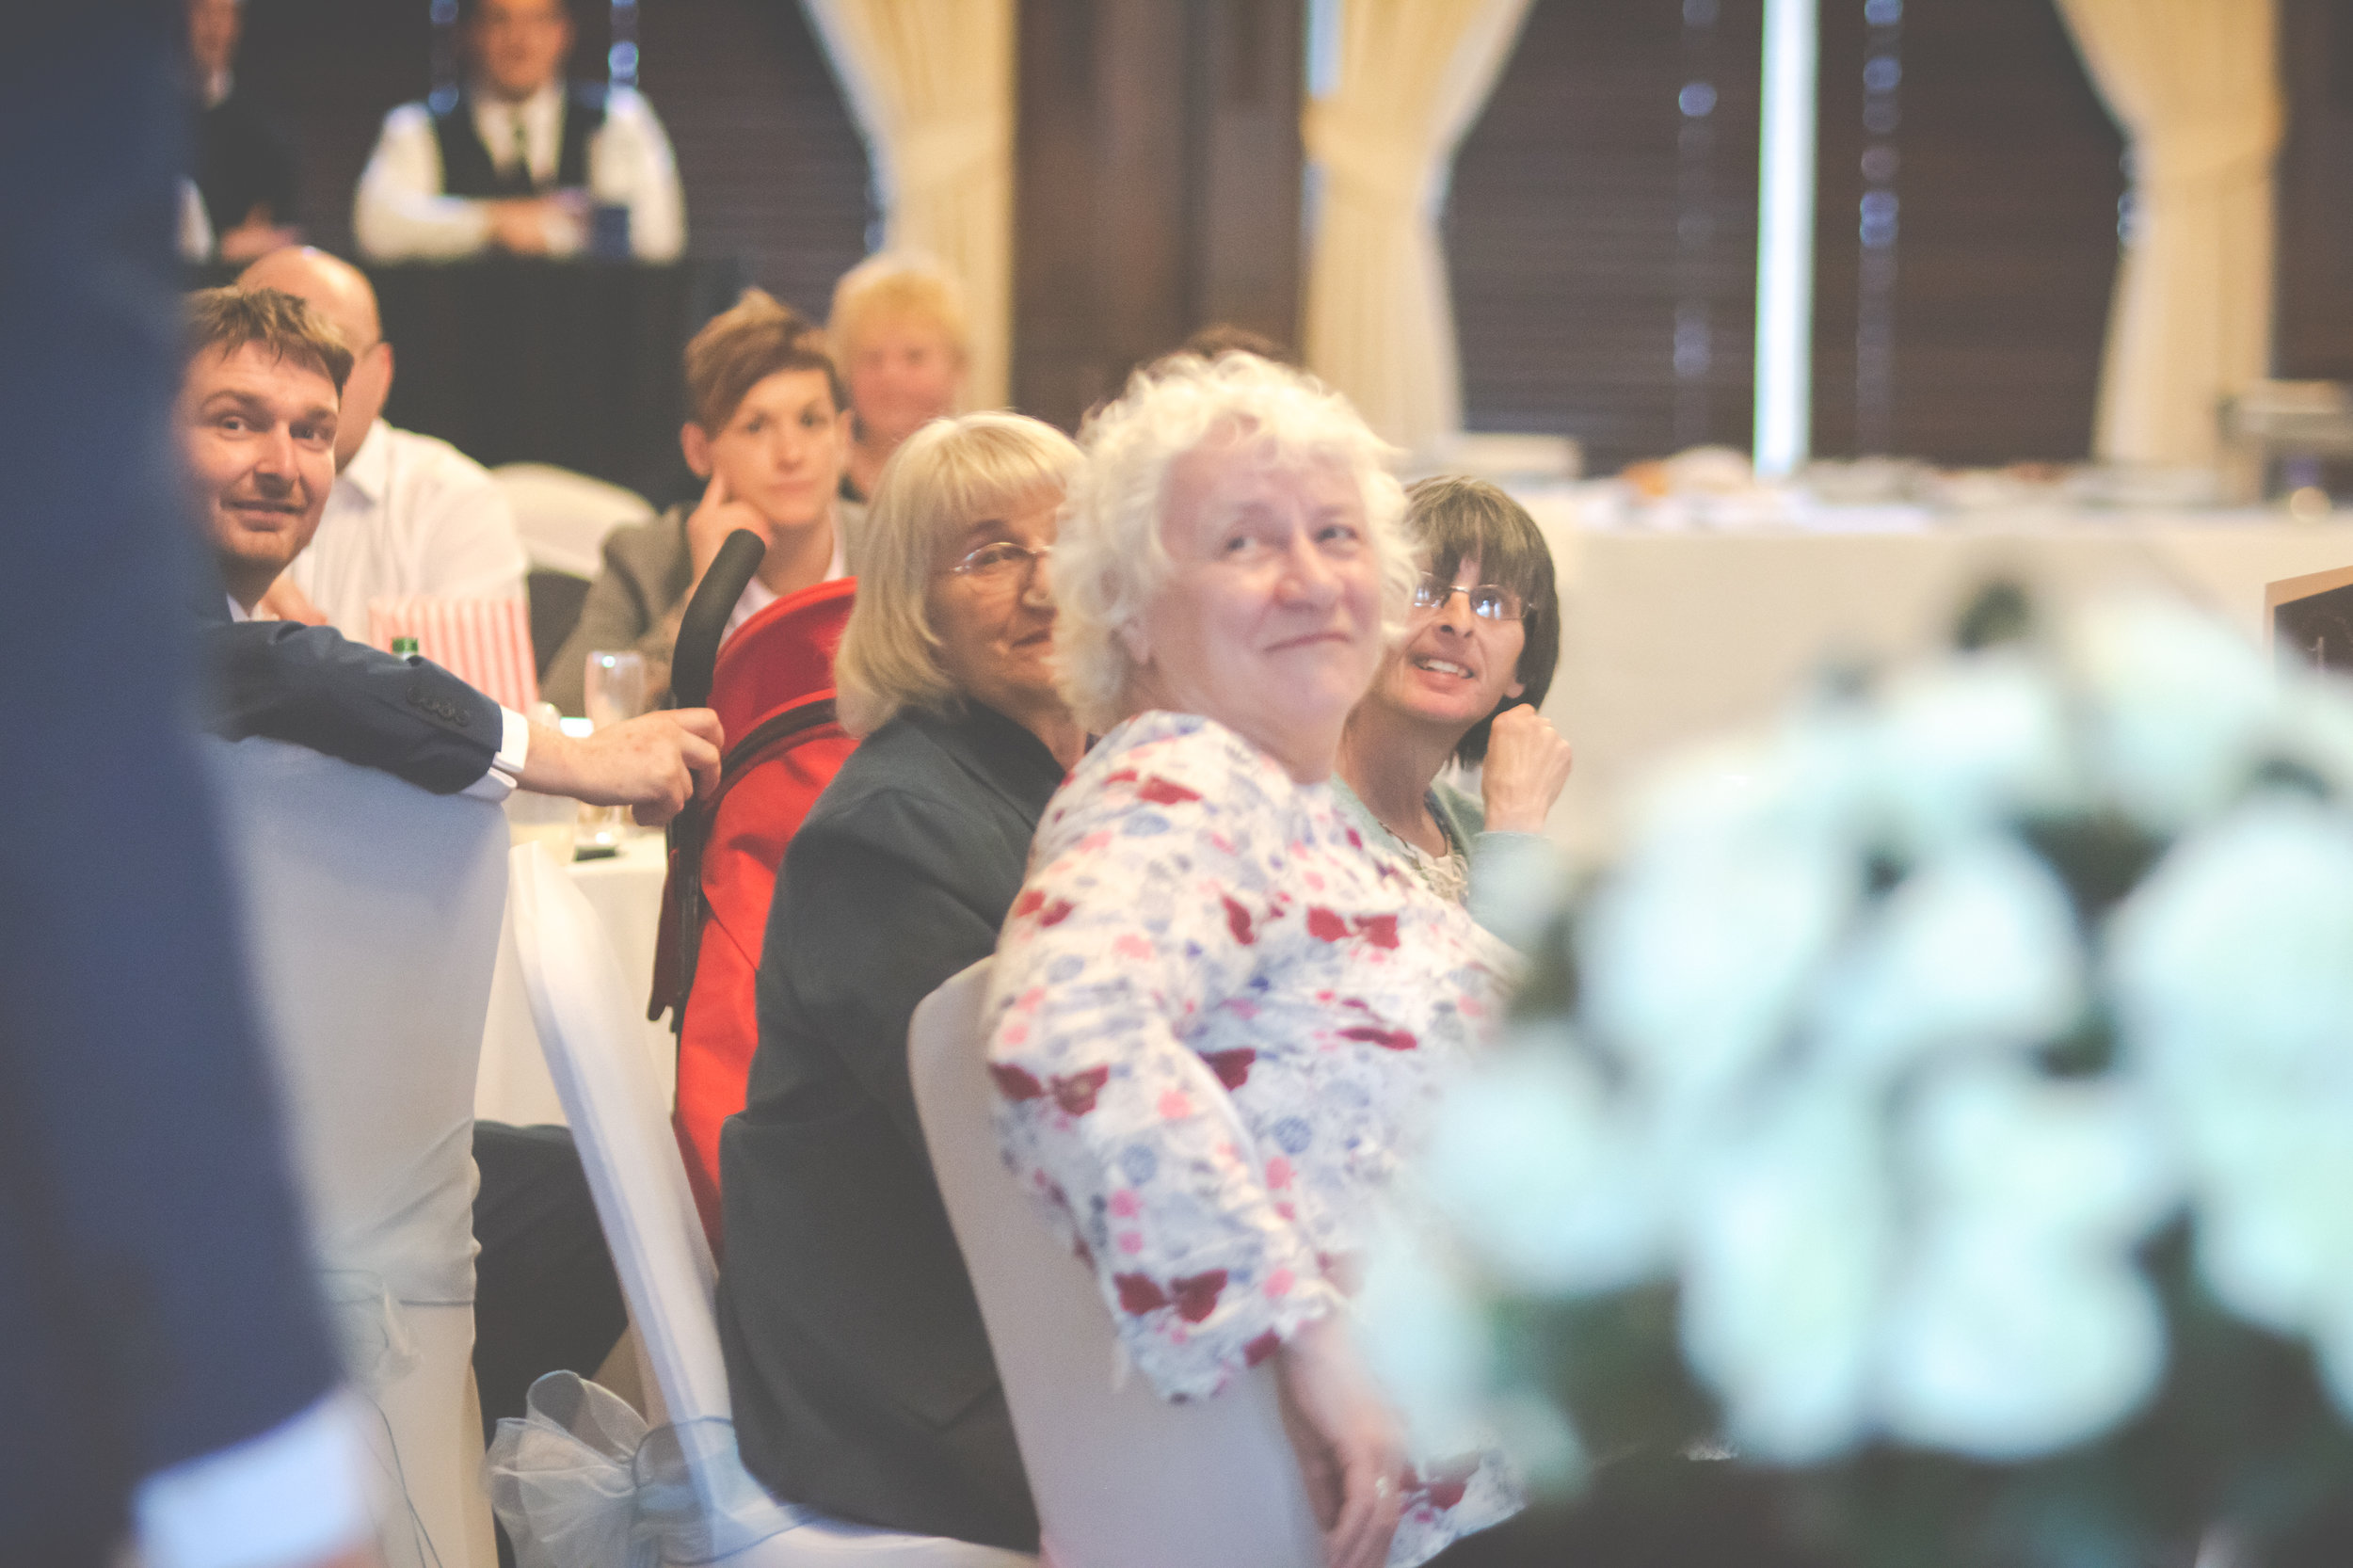 bradford-wedding-photographer-great-victoria-hotel-45